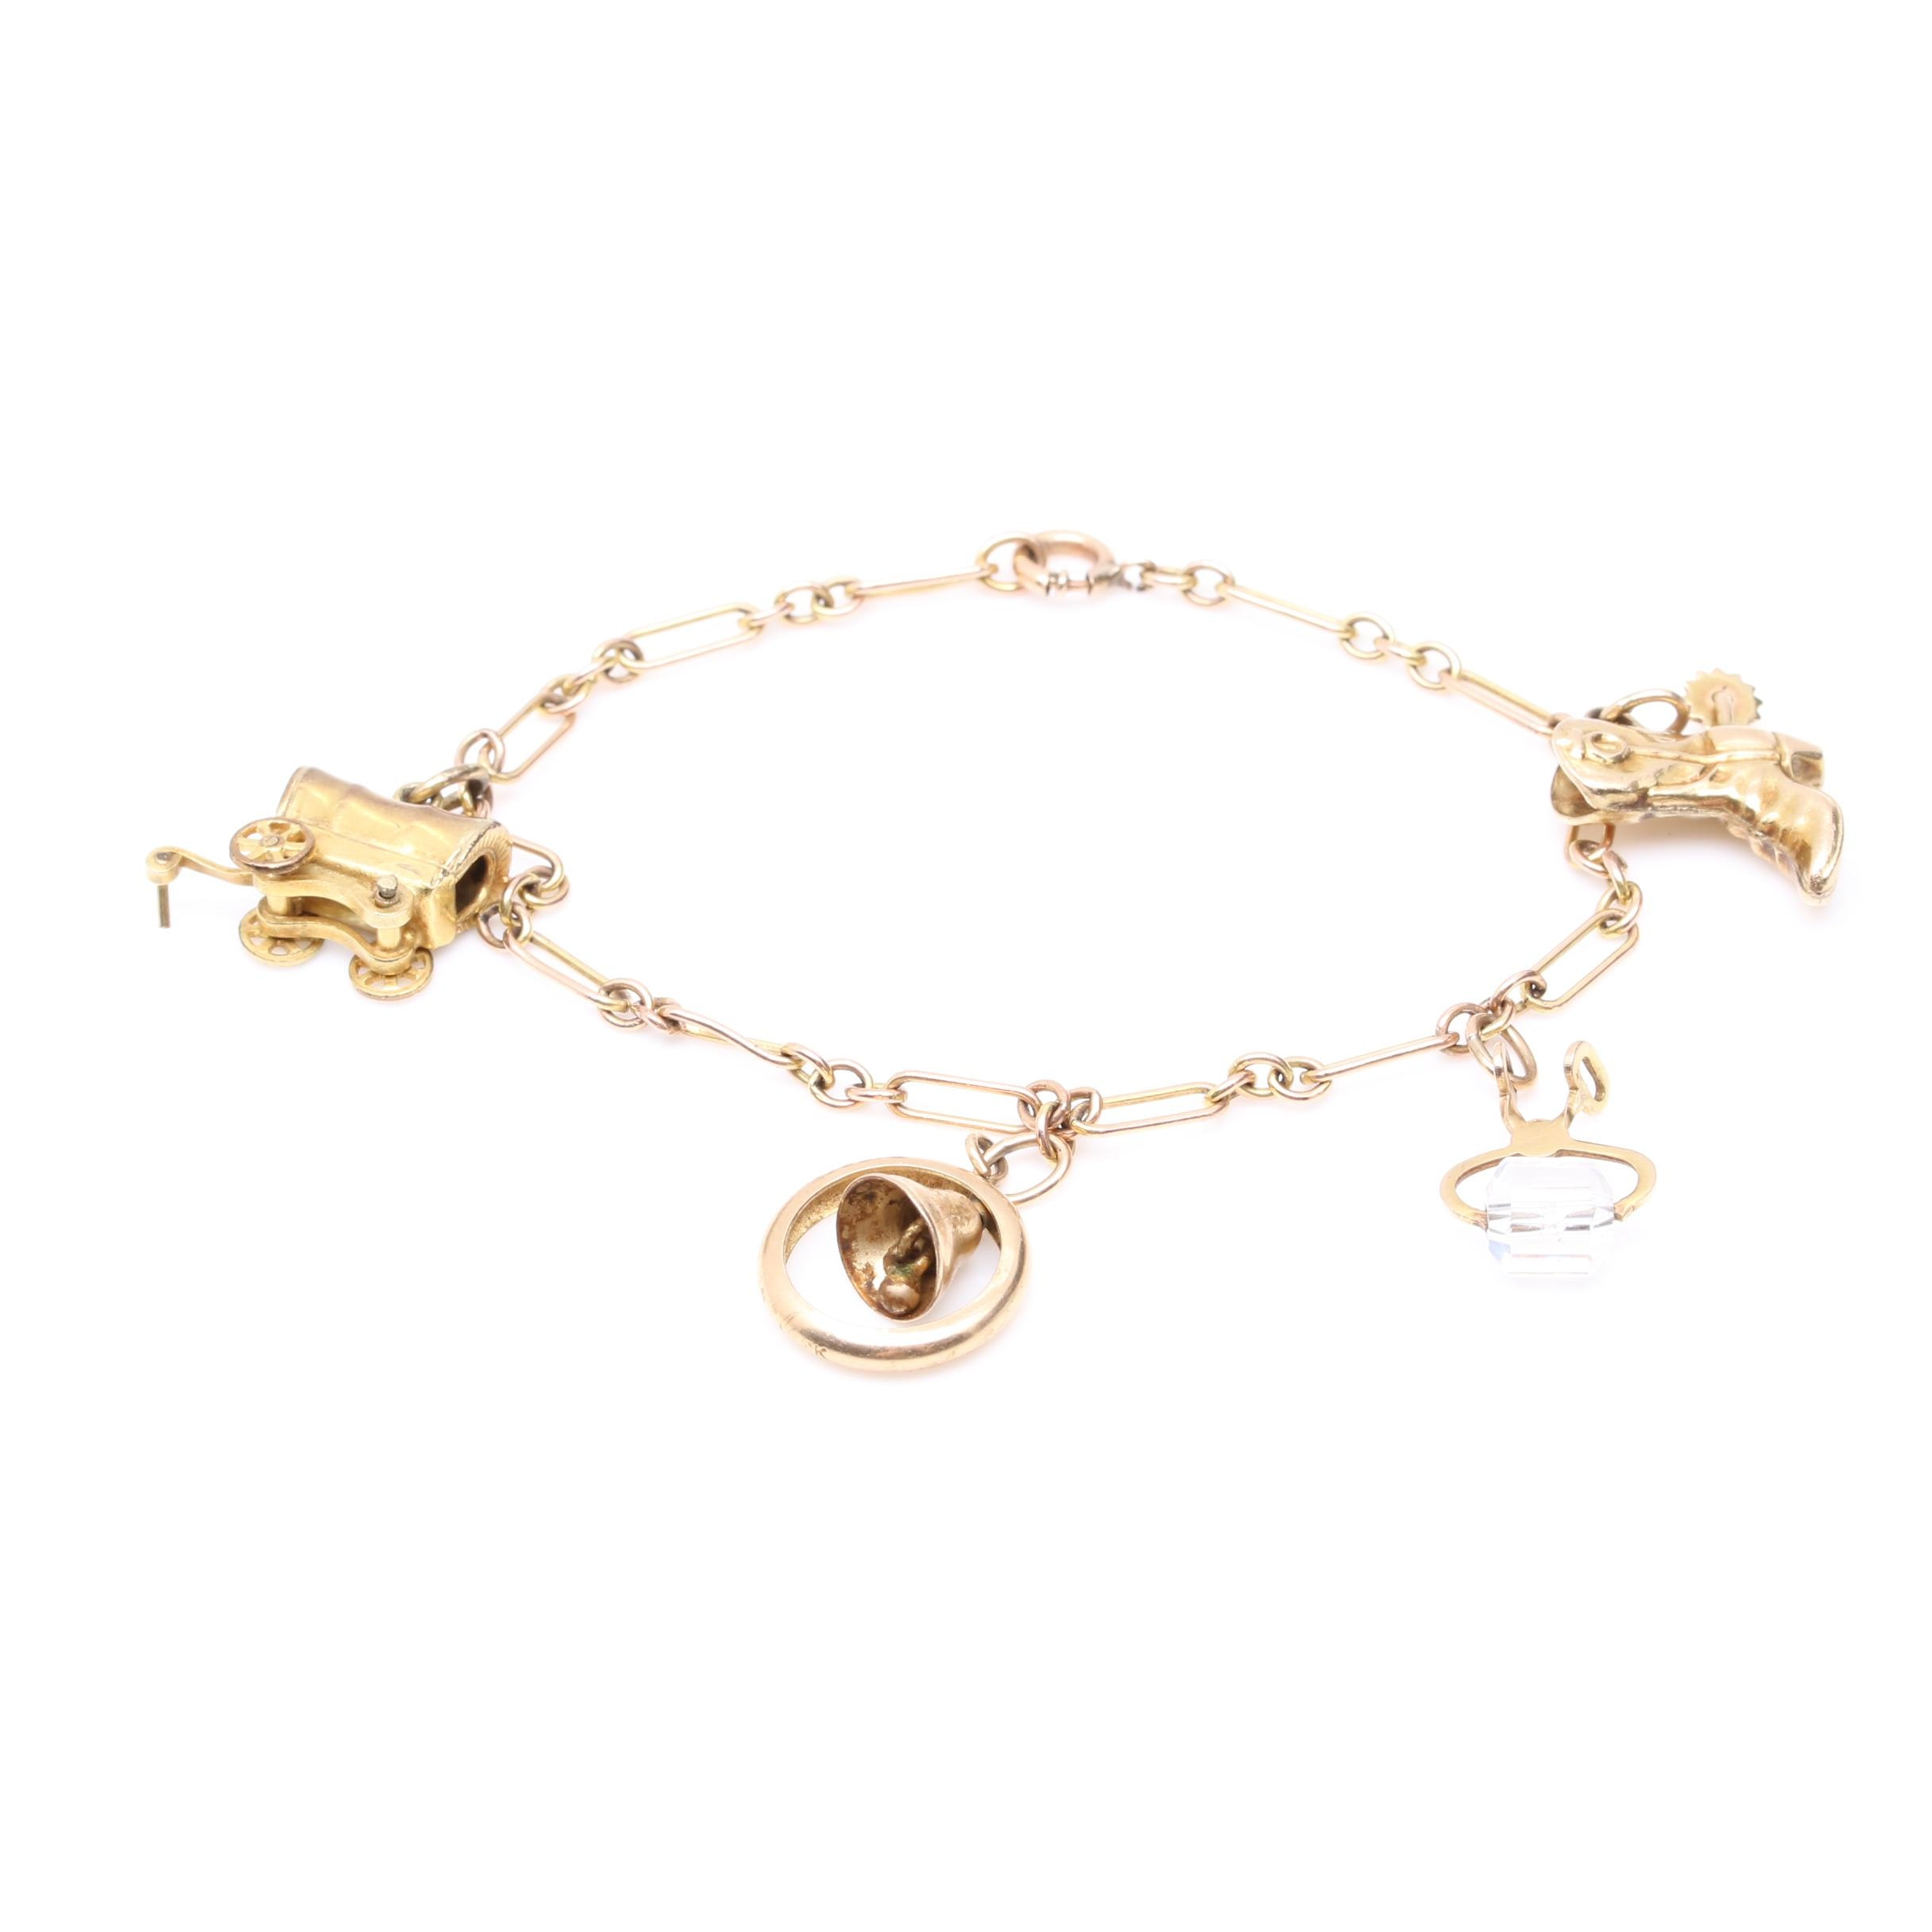 Charm Bracelet with 10K Yellow Gold Charms